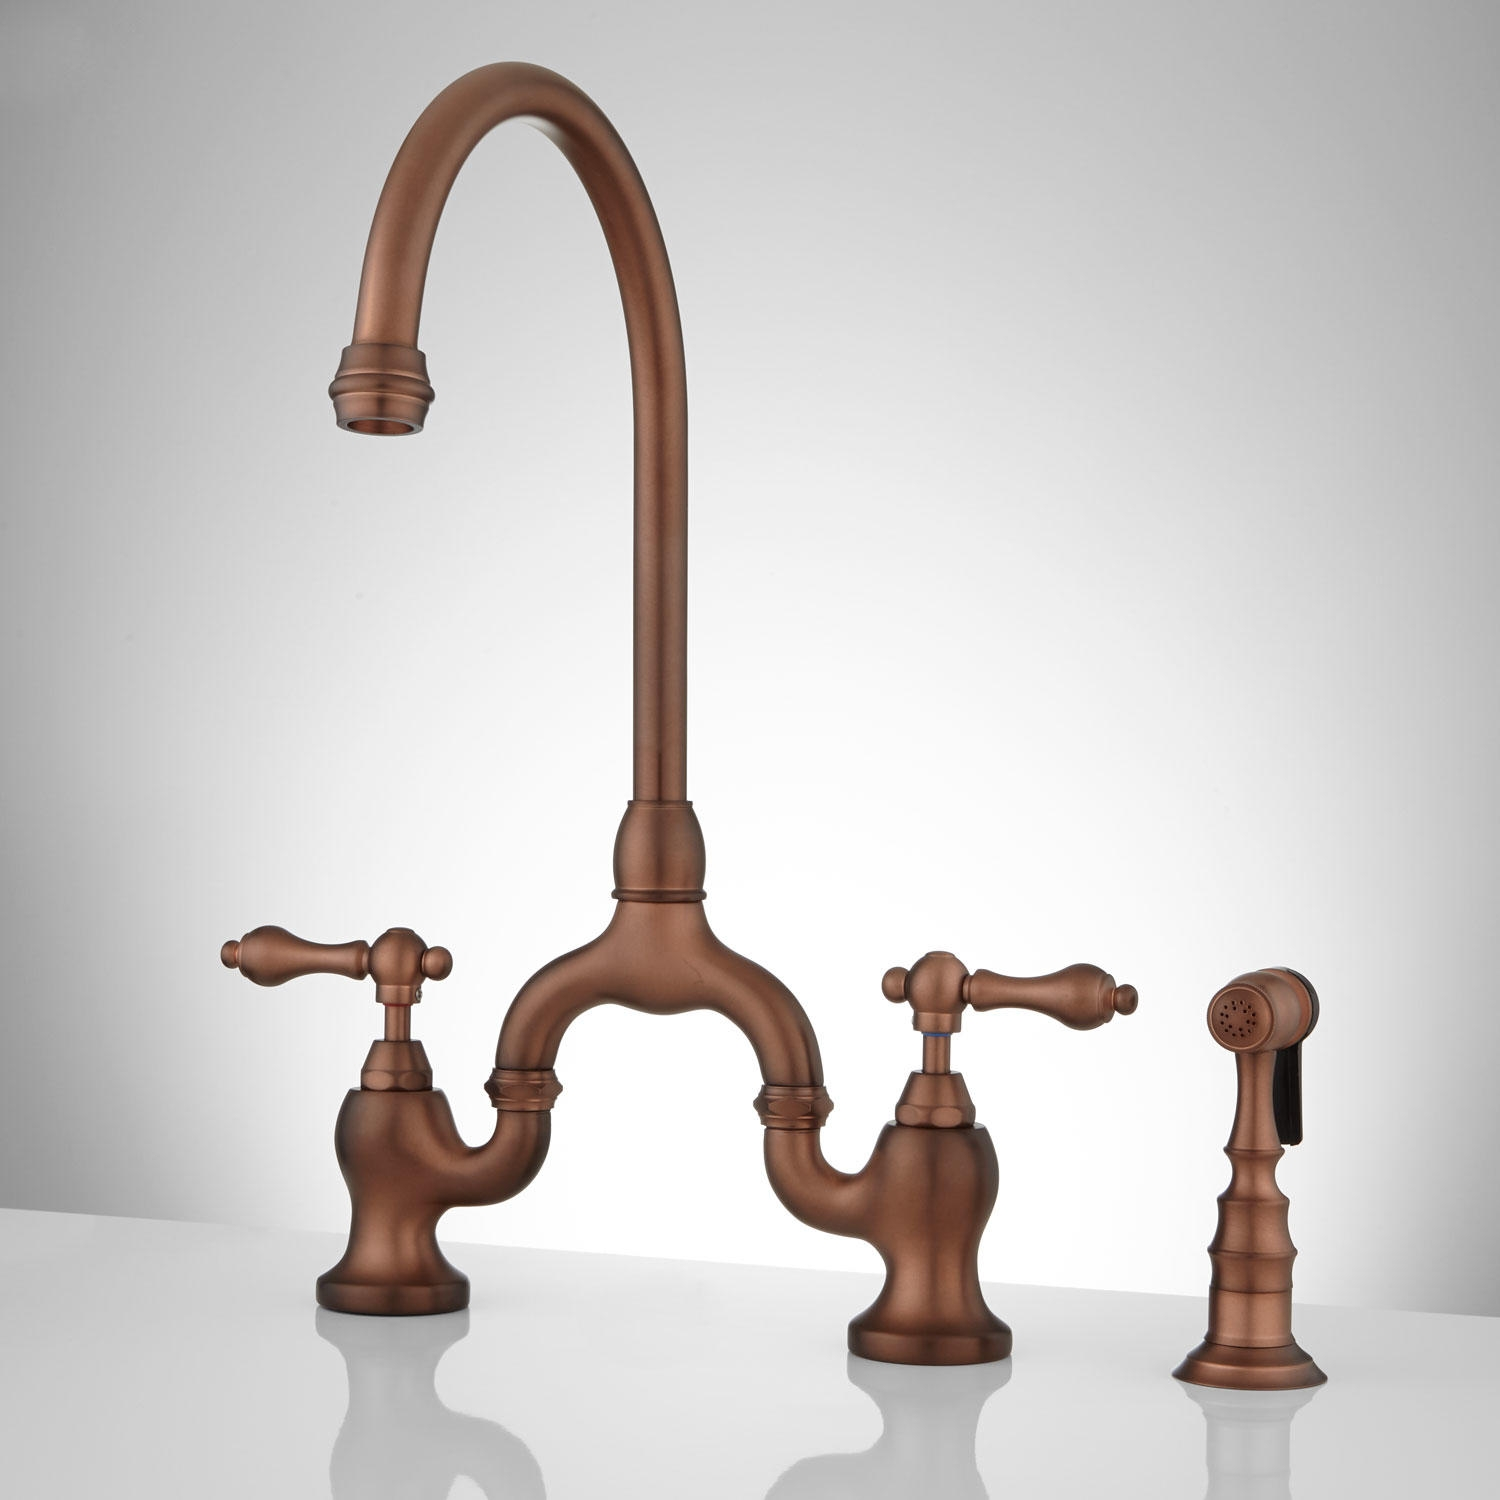 Ideas, vintage faucet signature hardware intended for dimensions 1500 x 1500  .